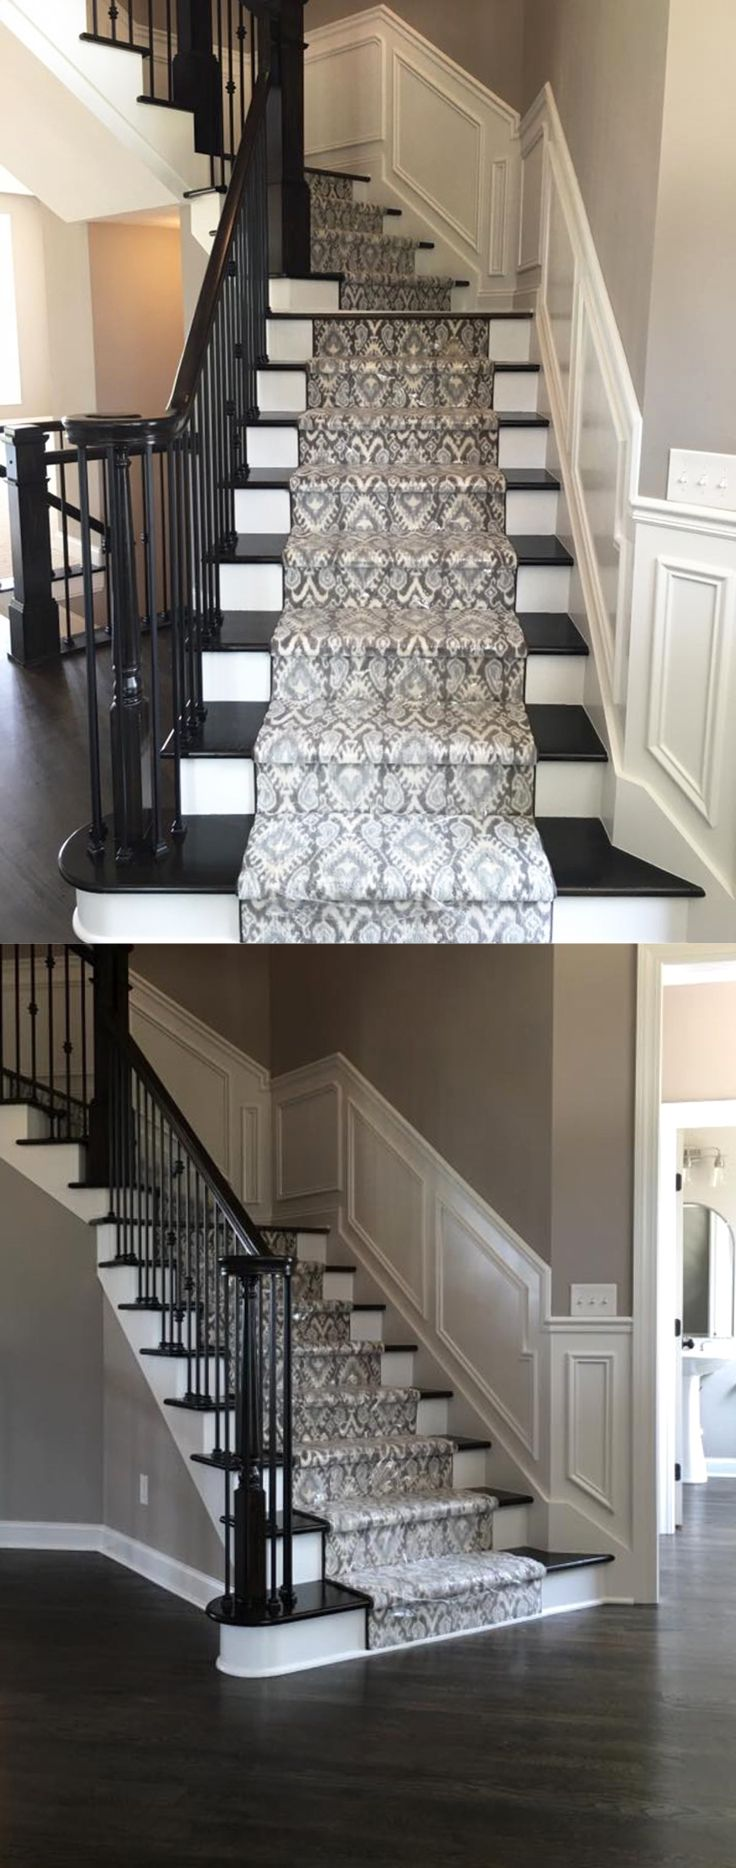 Beautiful Patterned Stair Runner On Dark Stained Stairs With Dark Hardwood  Flooring | Milliken Imagine Artisan